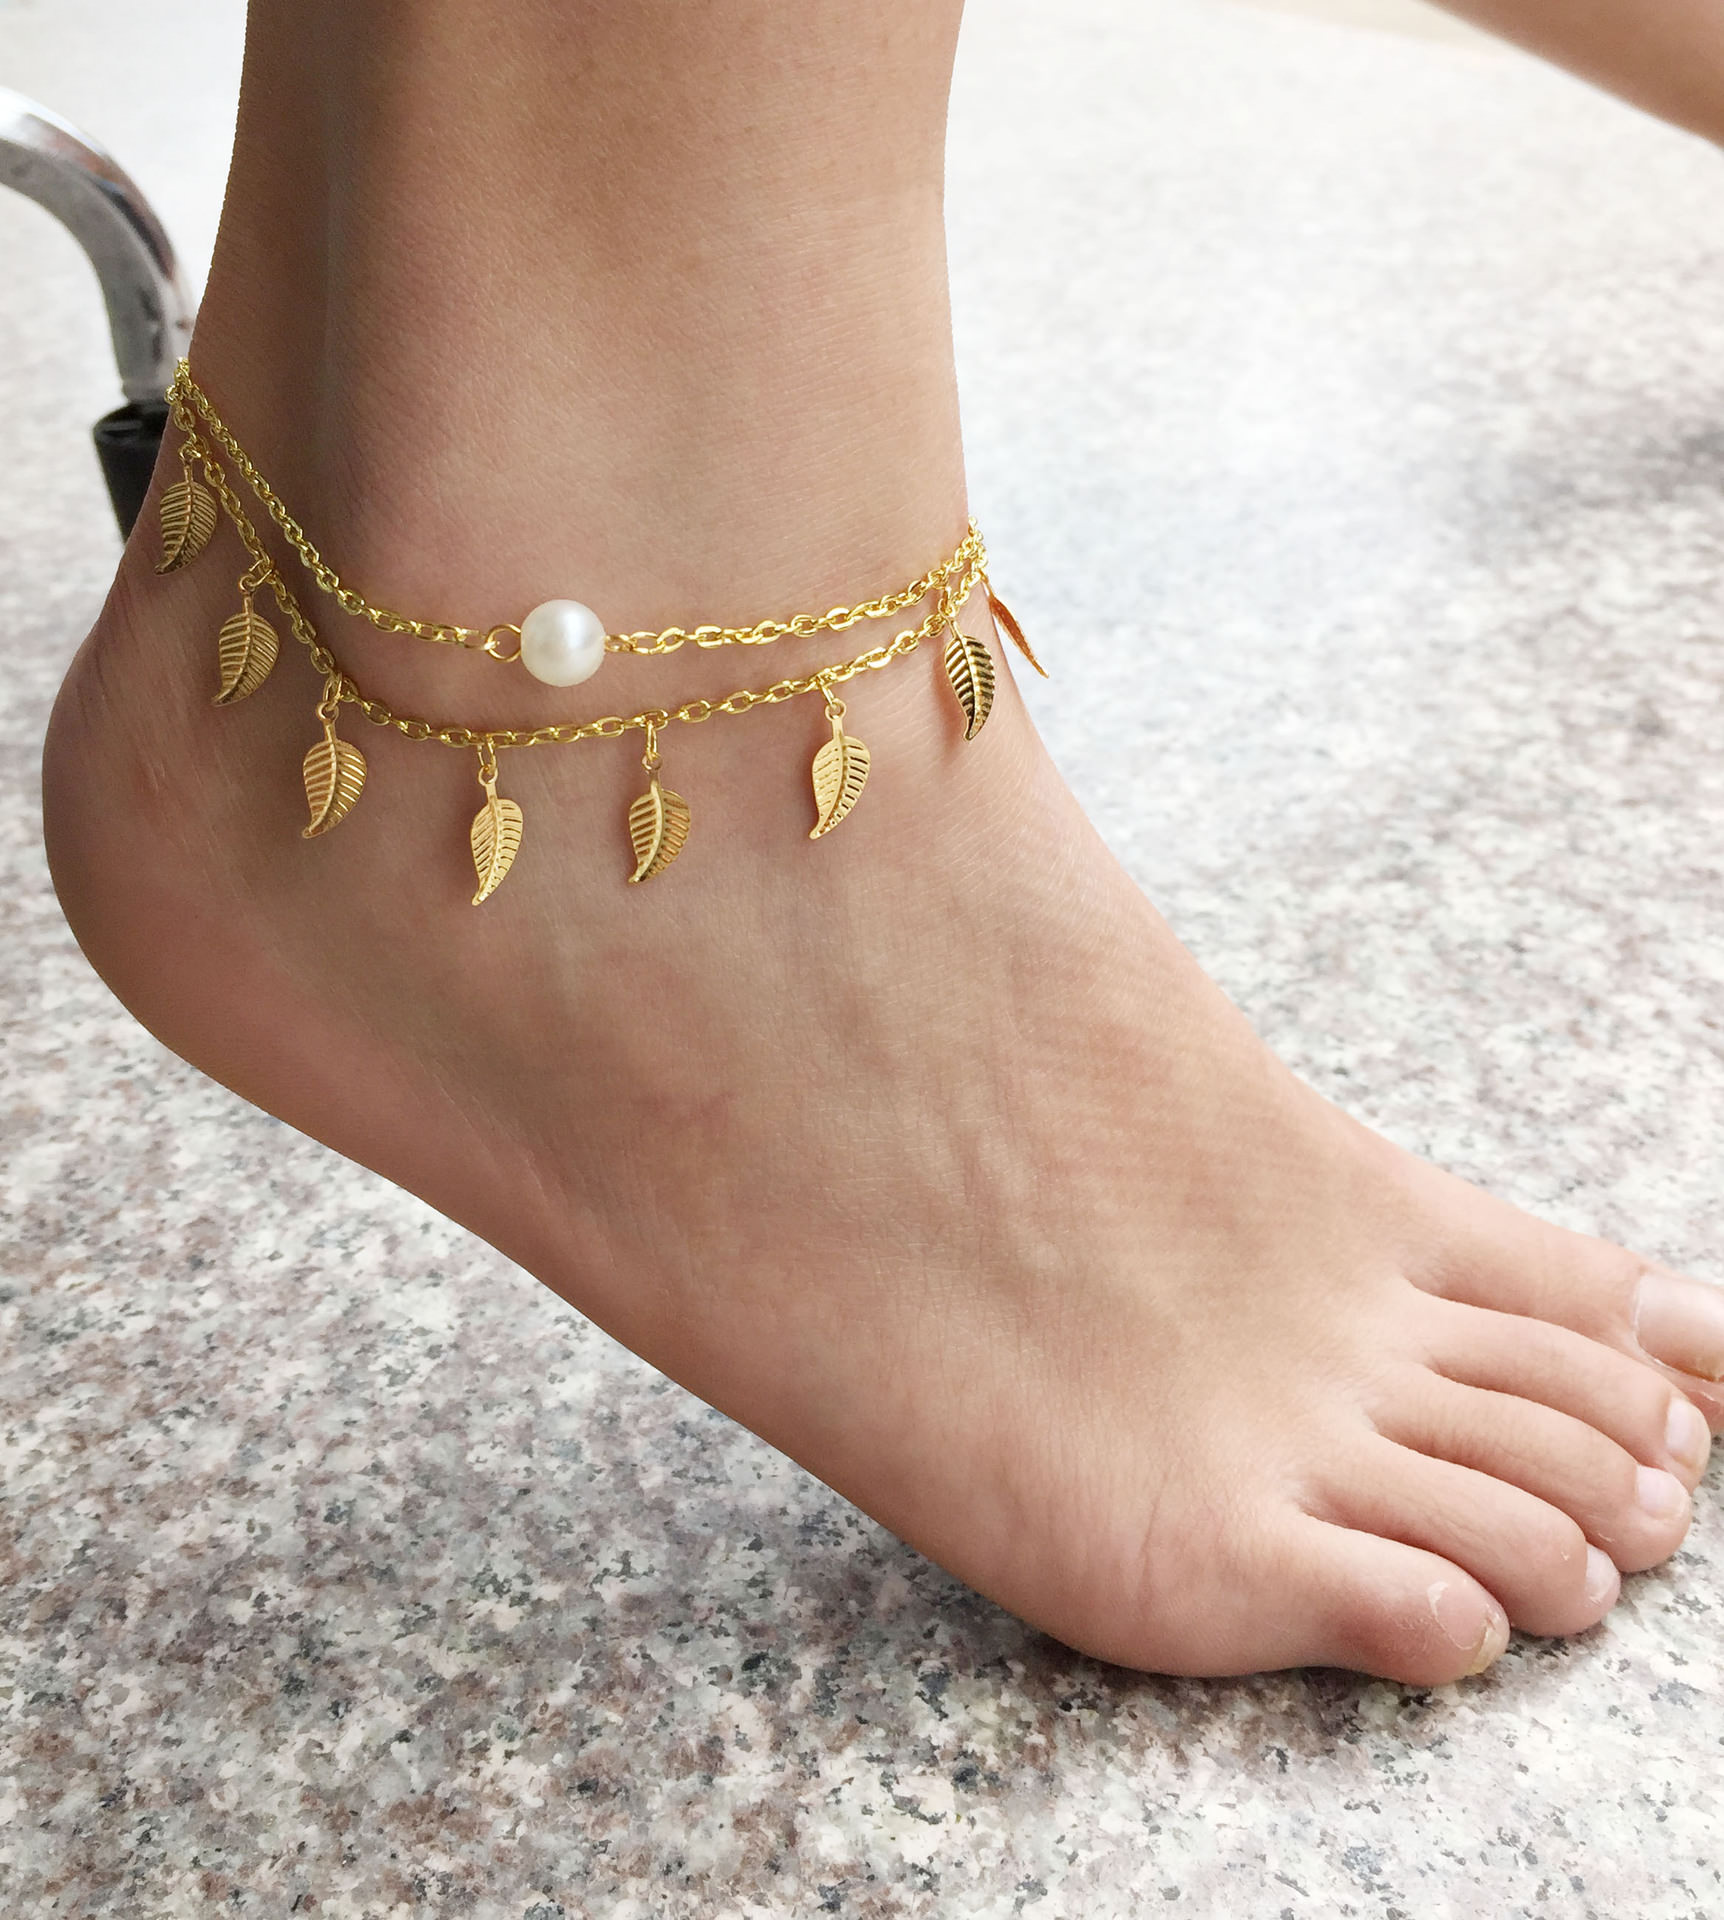 7062-5901c940357ffb89519420e31faf8051 Beaded Chain Anklet Jewelry With Leaf Shaped Pendants